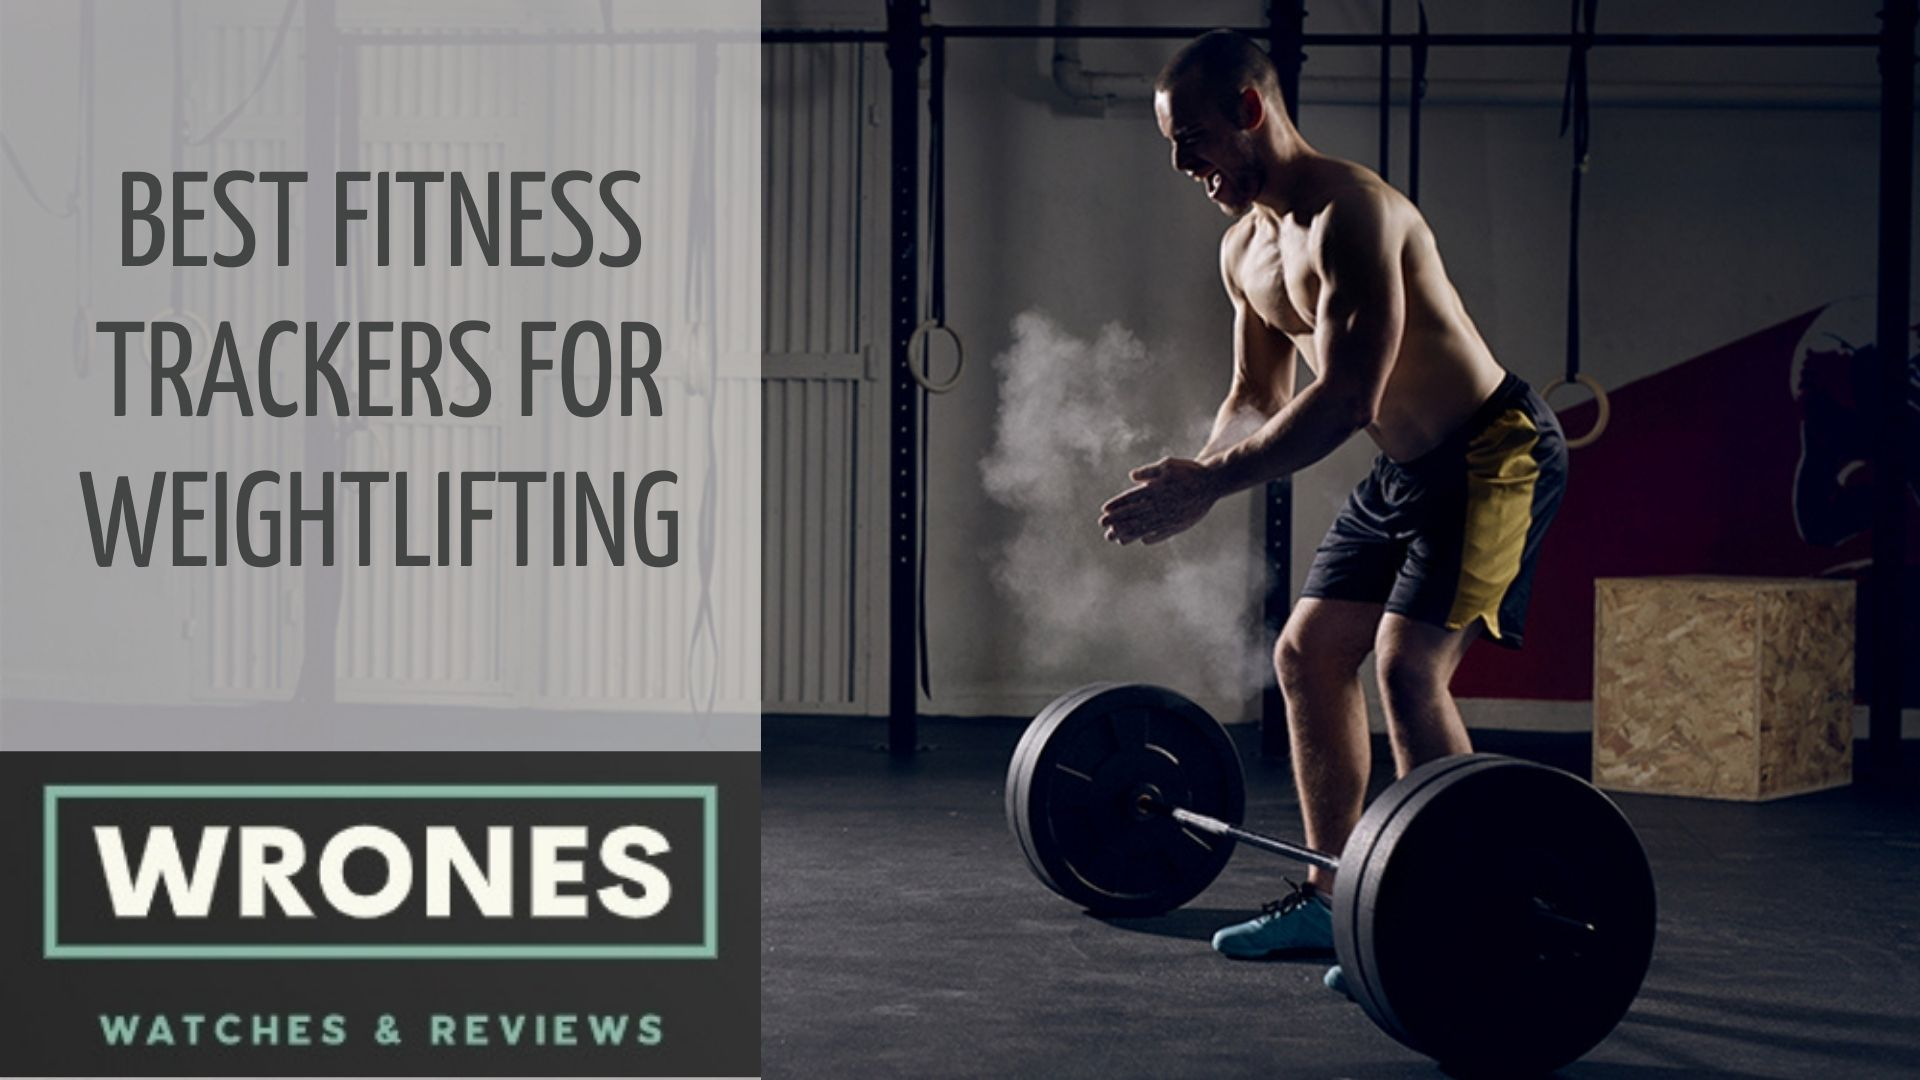 Best Fitness Trackers for Weightlifting wrones